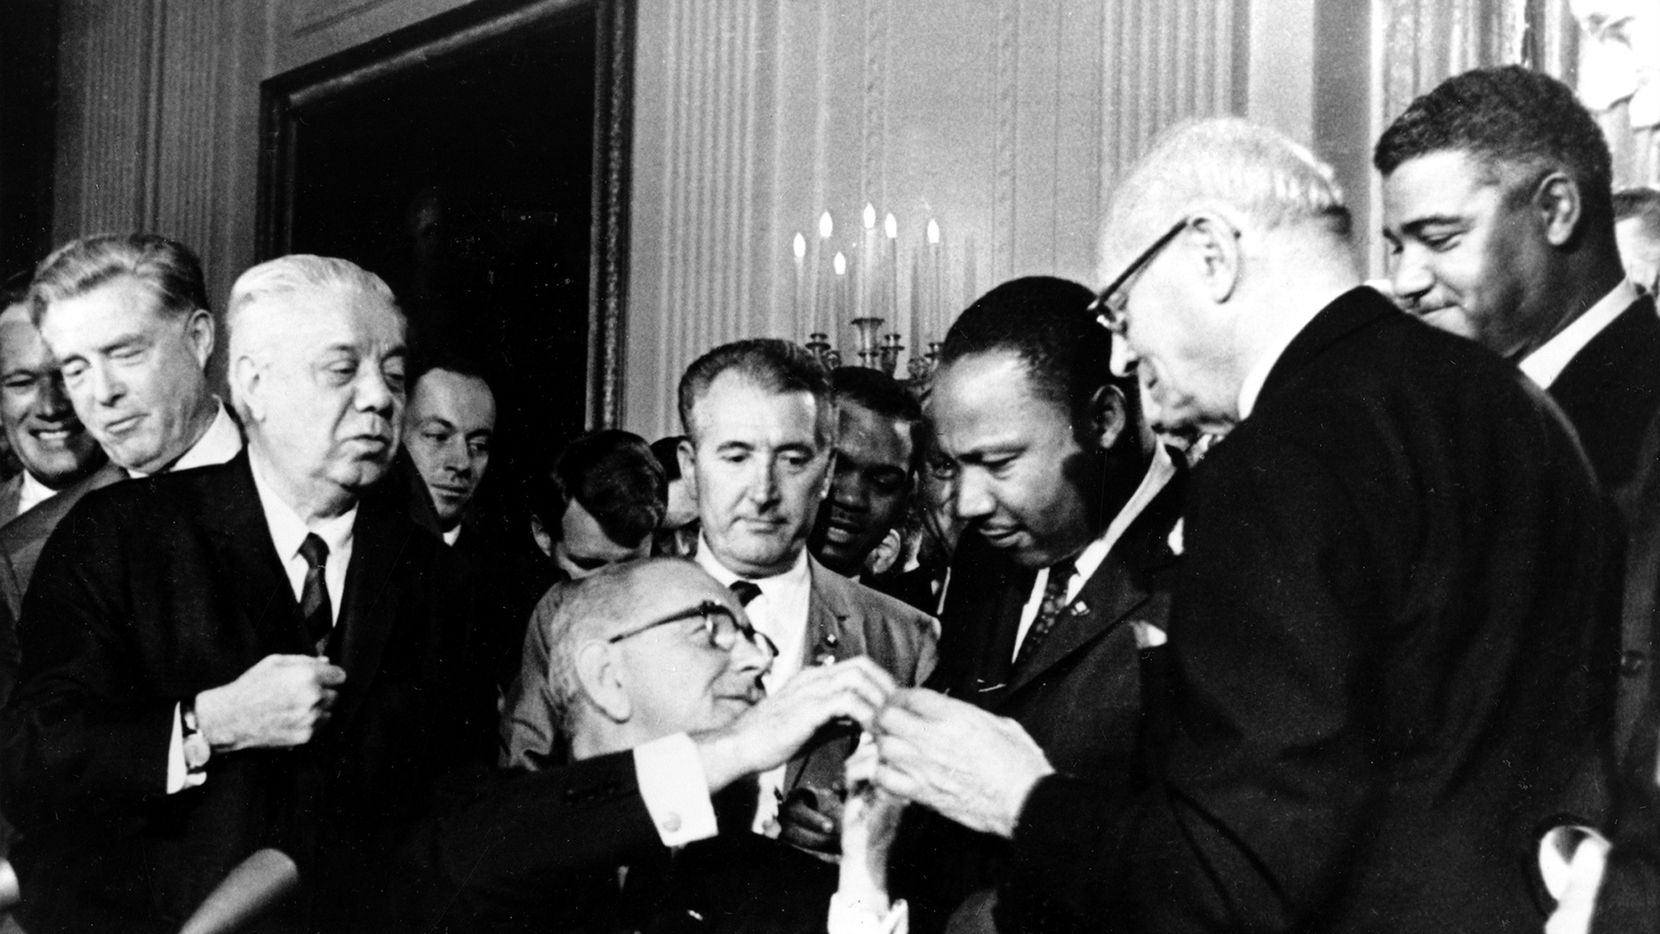 In this July 2, 1964, file photo, President Lyndon B. Johnson reaches to shake hands with Dr. Martin Luther King Jr. after presenting the civil rights leader with one of the 72 pens used to sign the Civil Rights Act in Washington. Surrounding the president, from left, are, Rep. Roland Libonati, D-Ill., Rep. Peter Rodino, D-N.J., Rev. King, Emanuel Celler, D-N.Y., and behind Celler is Whitney Young, executive director of the National Urban League. President Barack Obama was 2-years-old when Johnson signed the Civil Rights Act. Half a century later, the first black president will commemorate what's been accomplished in his lifetime. He'll also recommit the nation to fighting deep inequalities that remain.  (AP Photo)